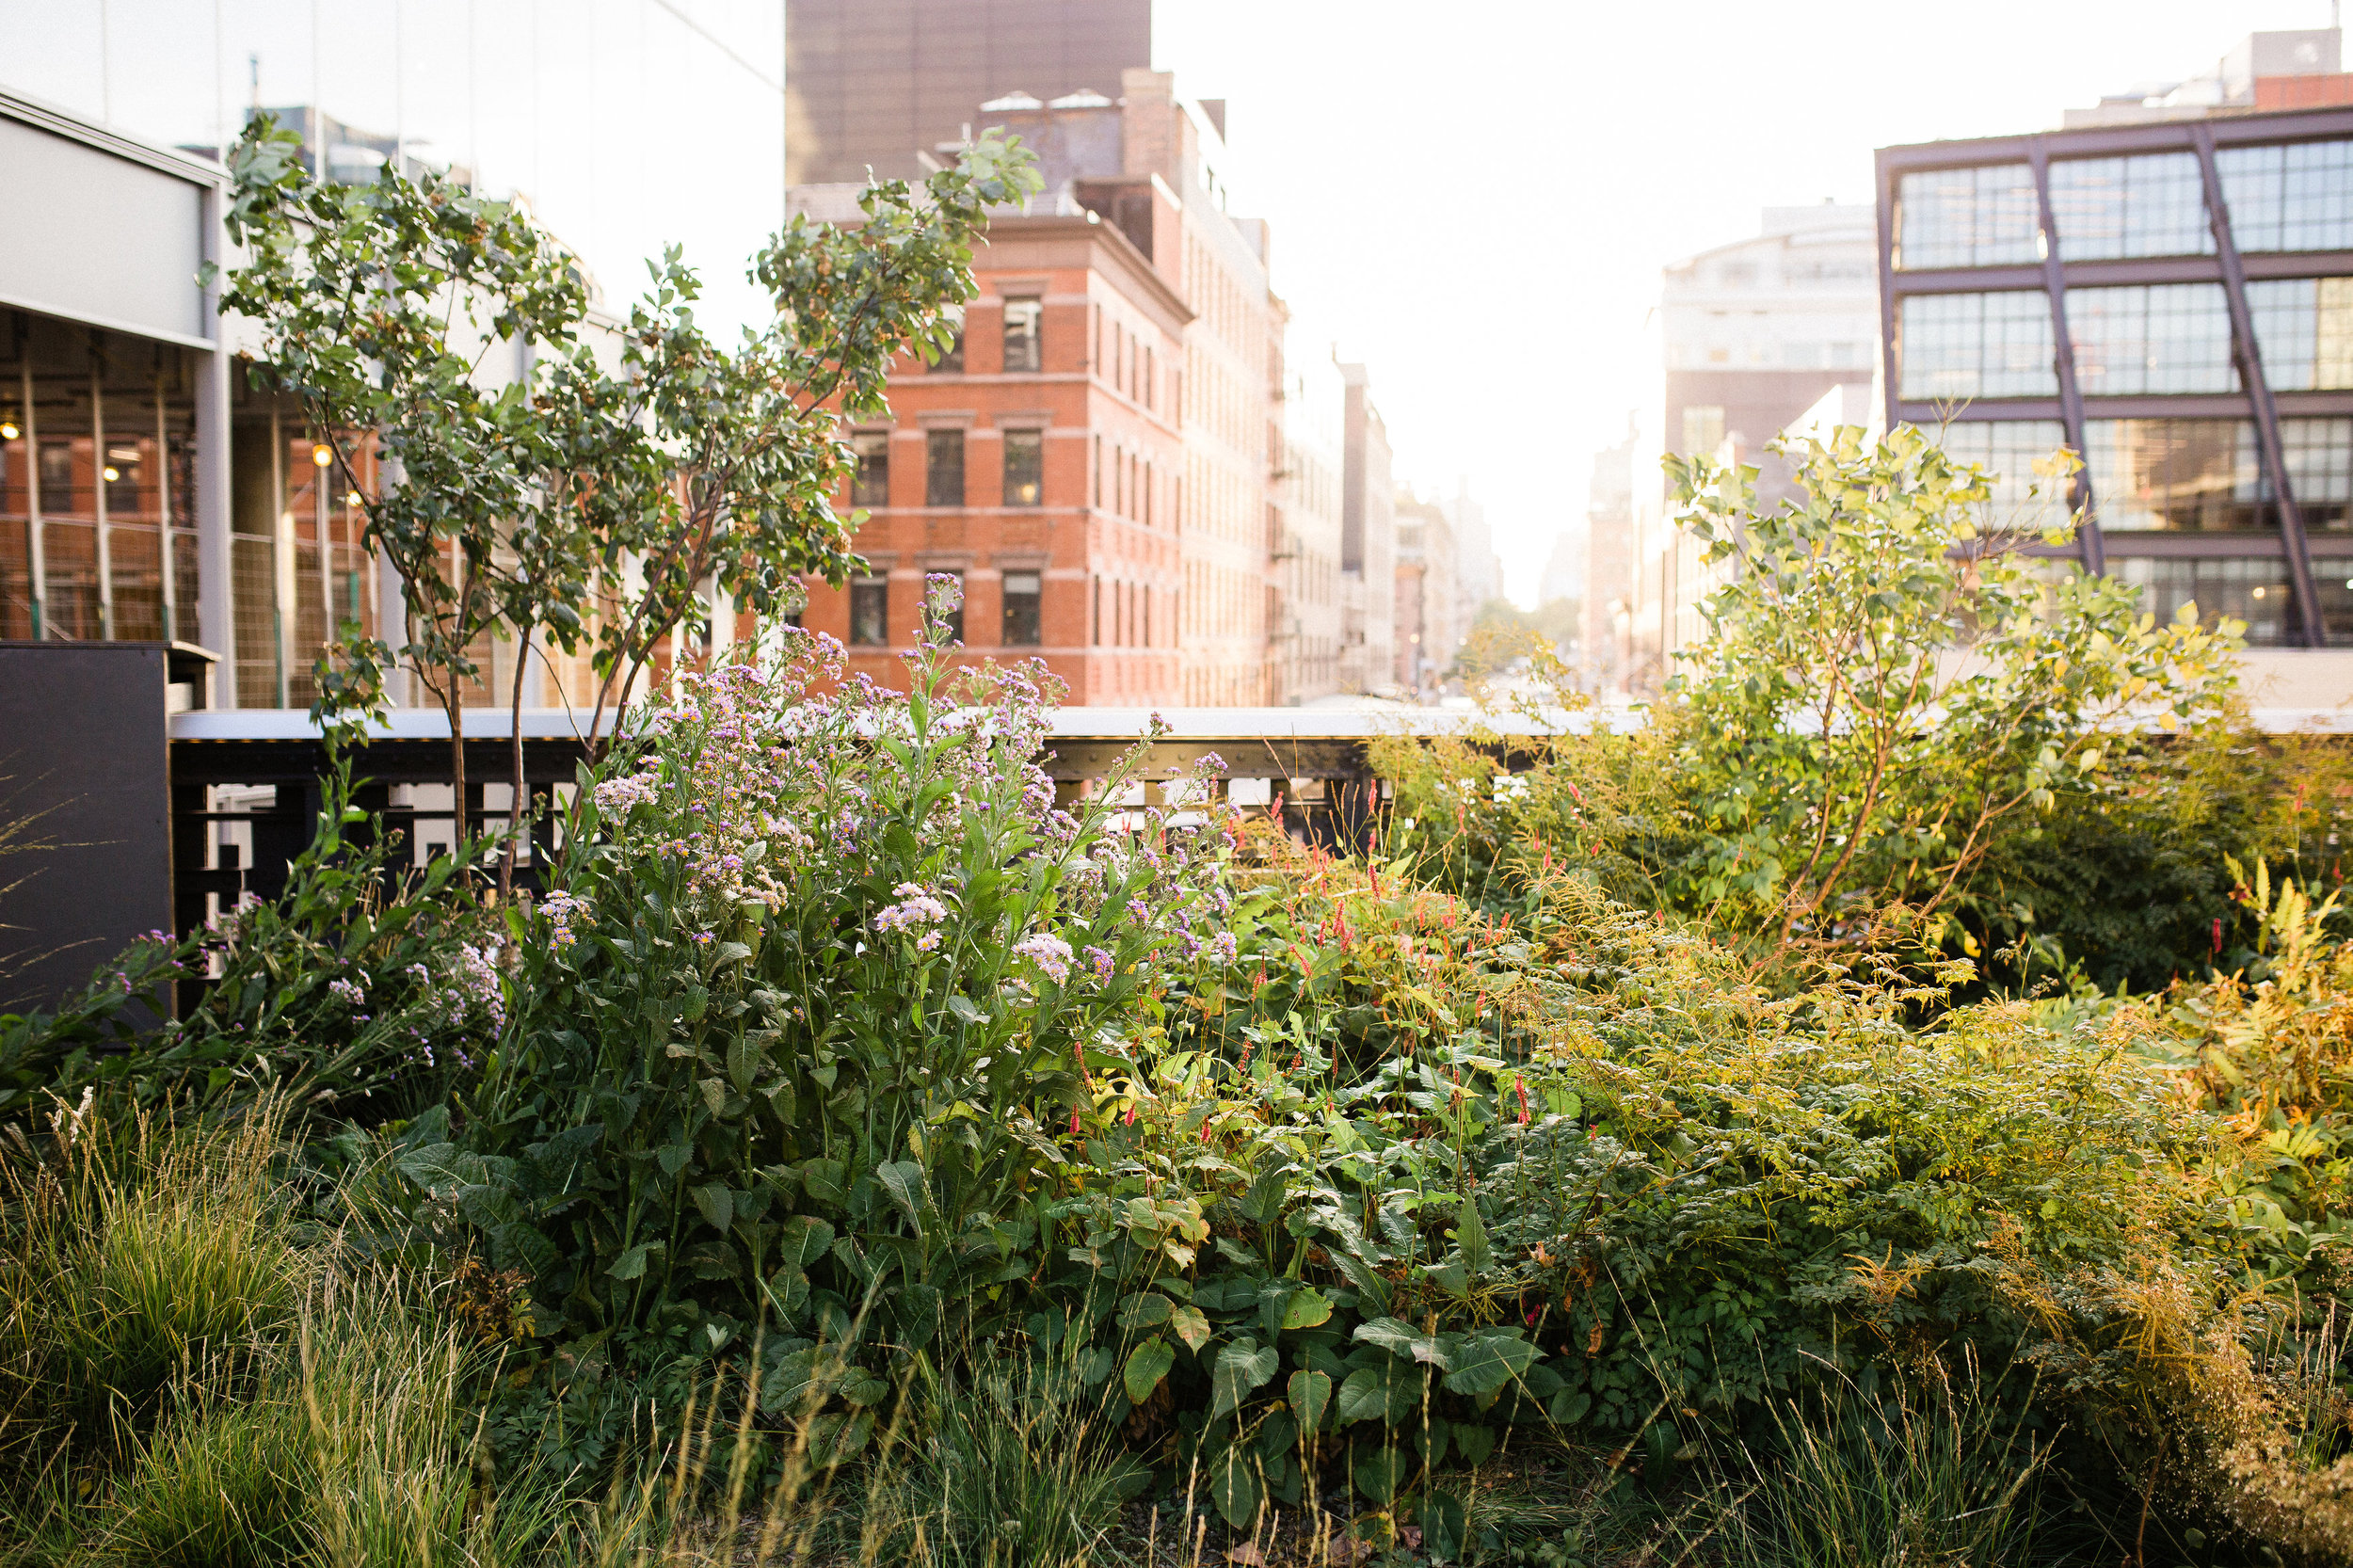 fritsch-family_highline-west-village-nyc-photography-2-2.jpg